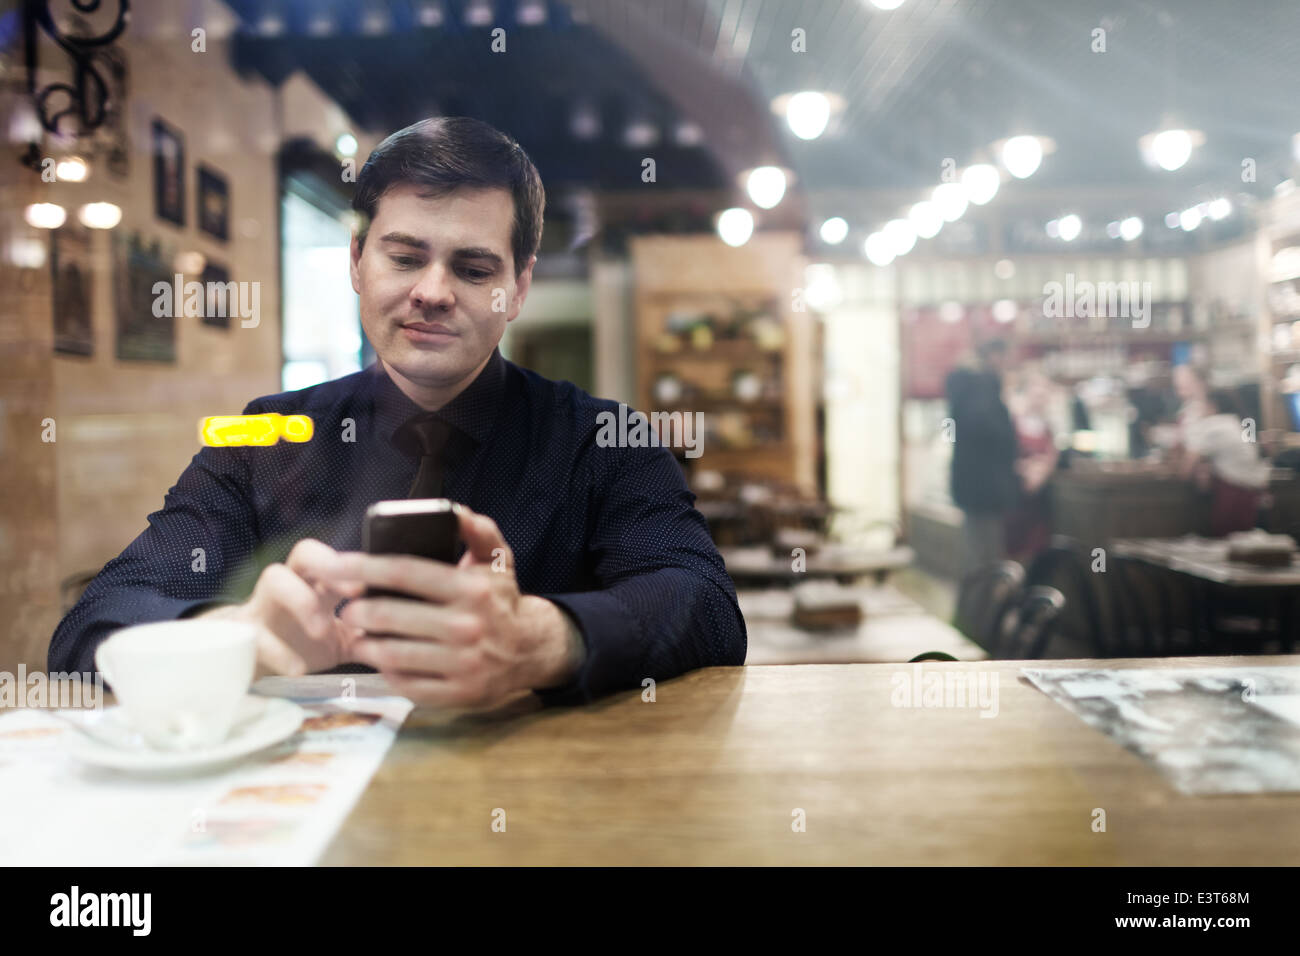 Gentleman sitting at the table using phone - Stock Image